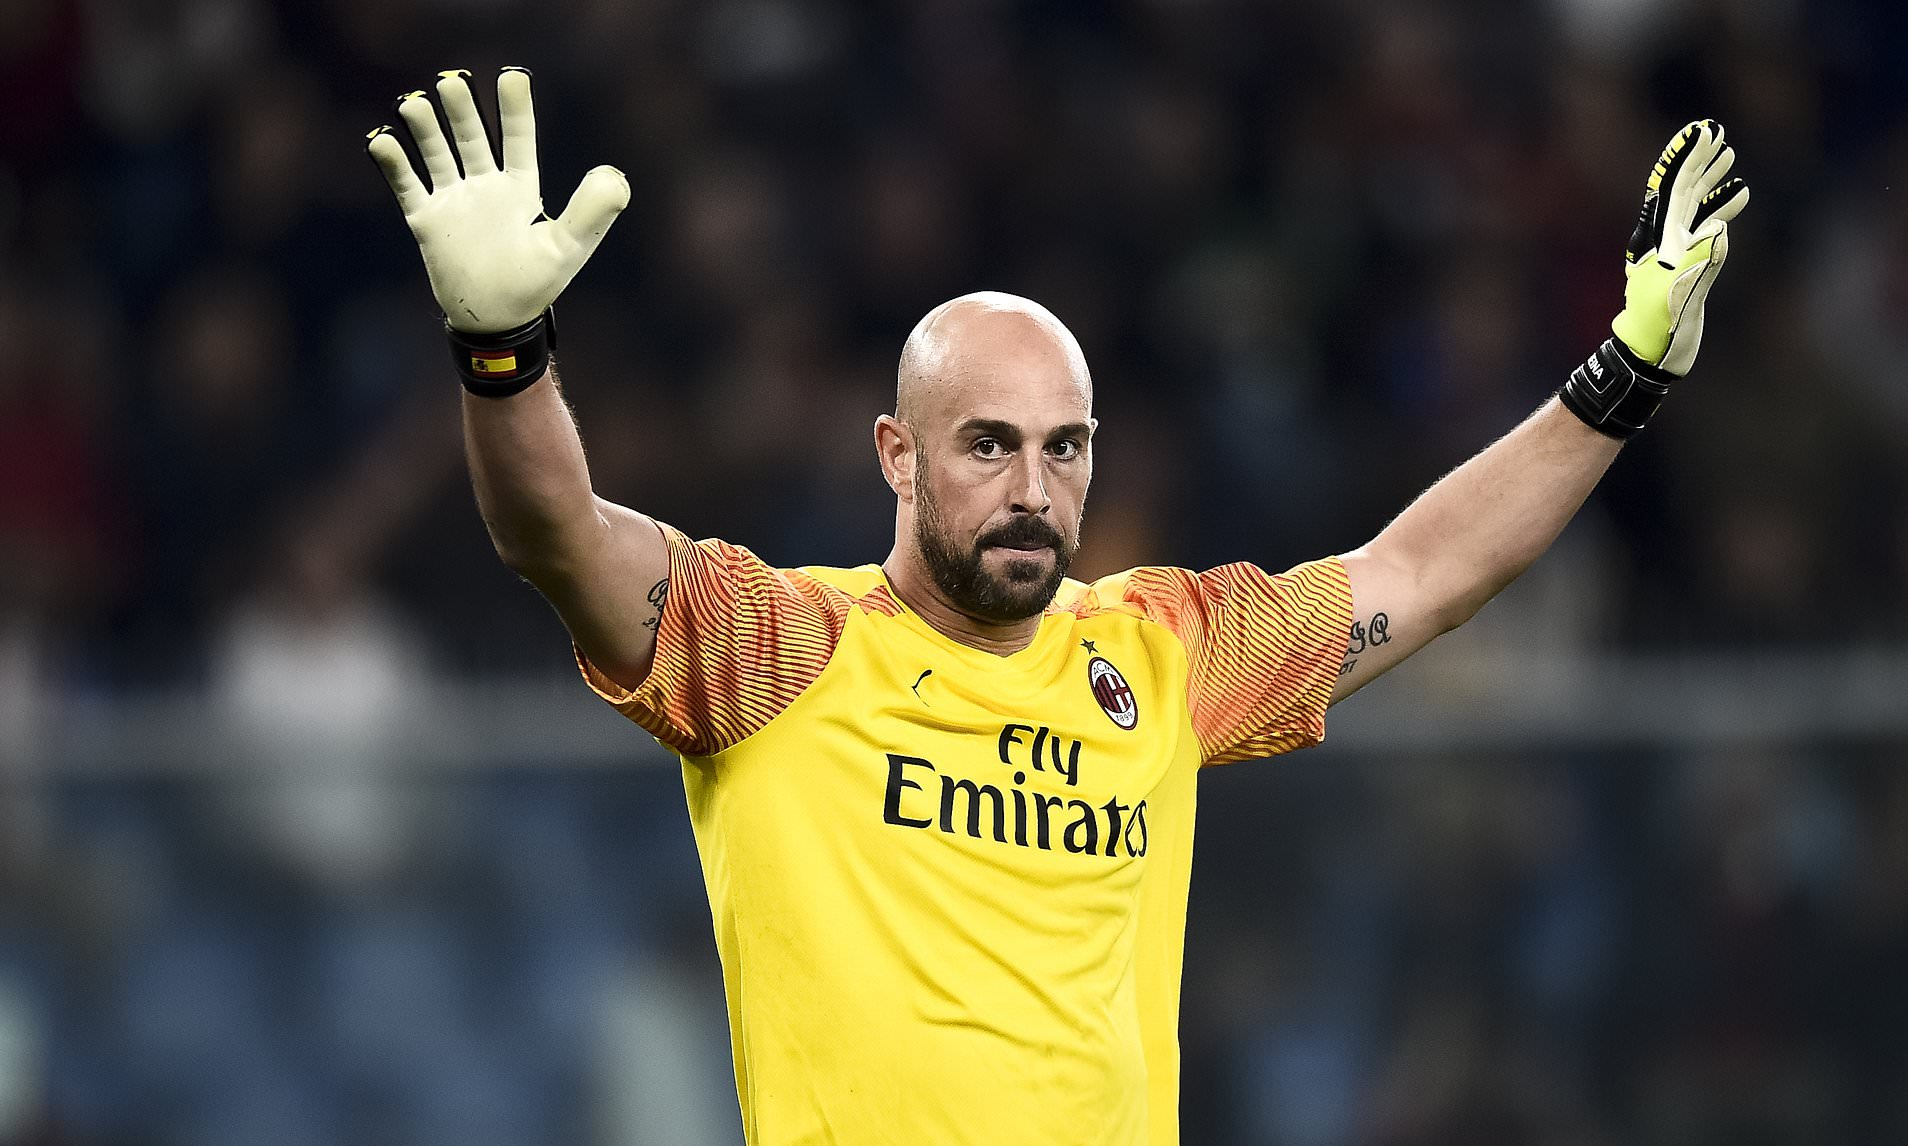 CM: Reina to complete Lazio move on Wednesday – how much Milan will save - SempreMilan